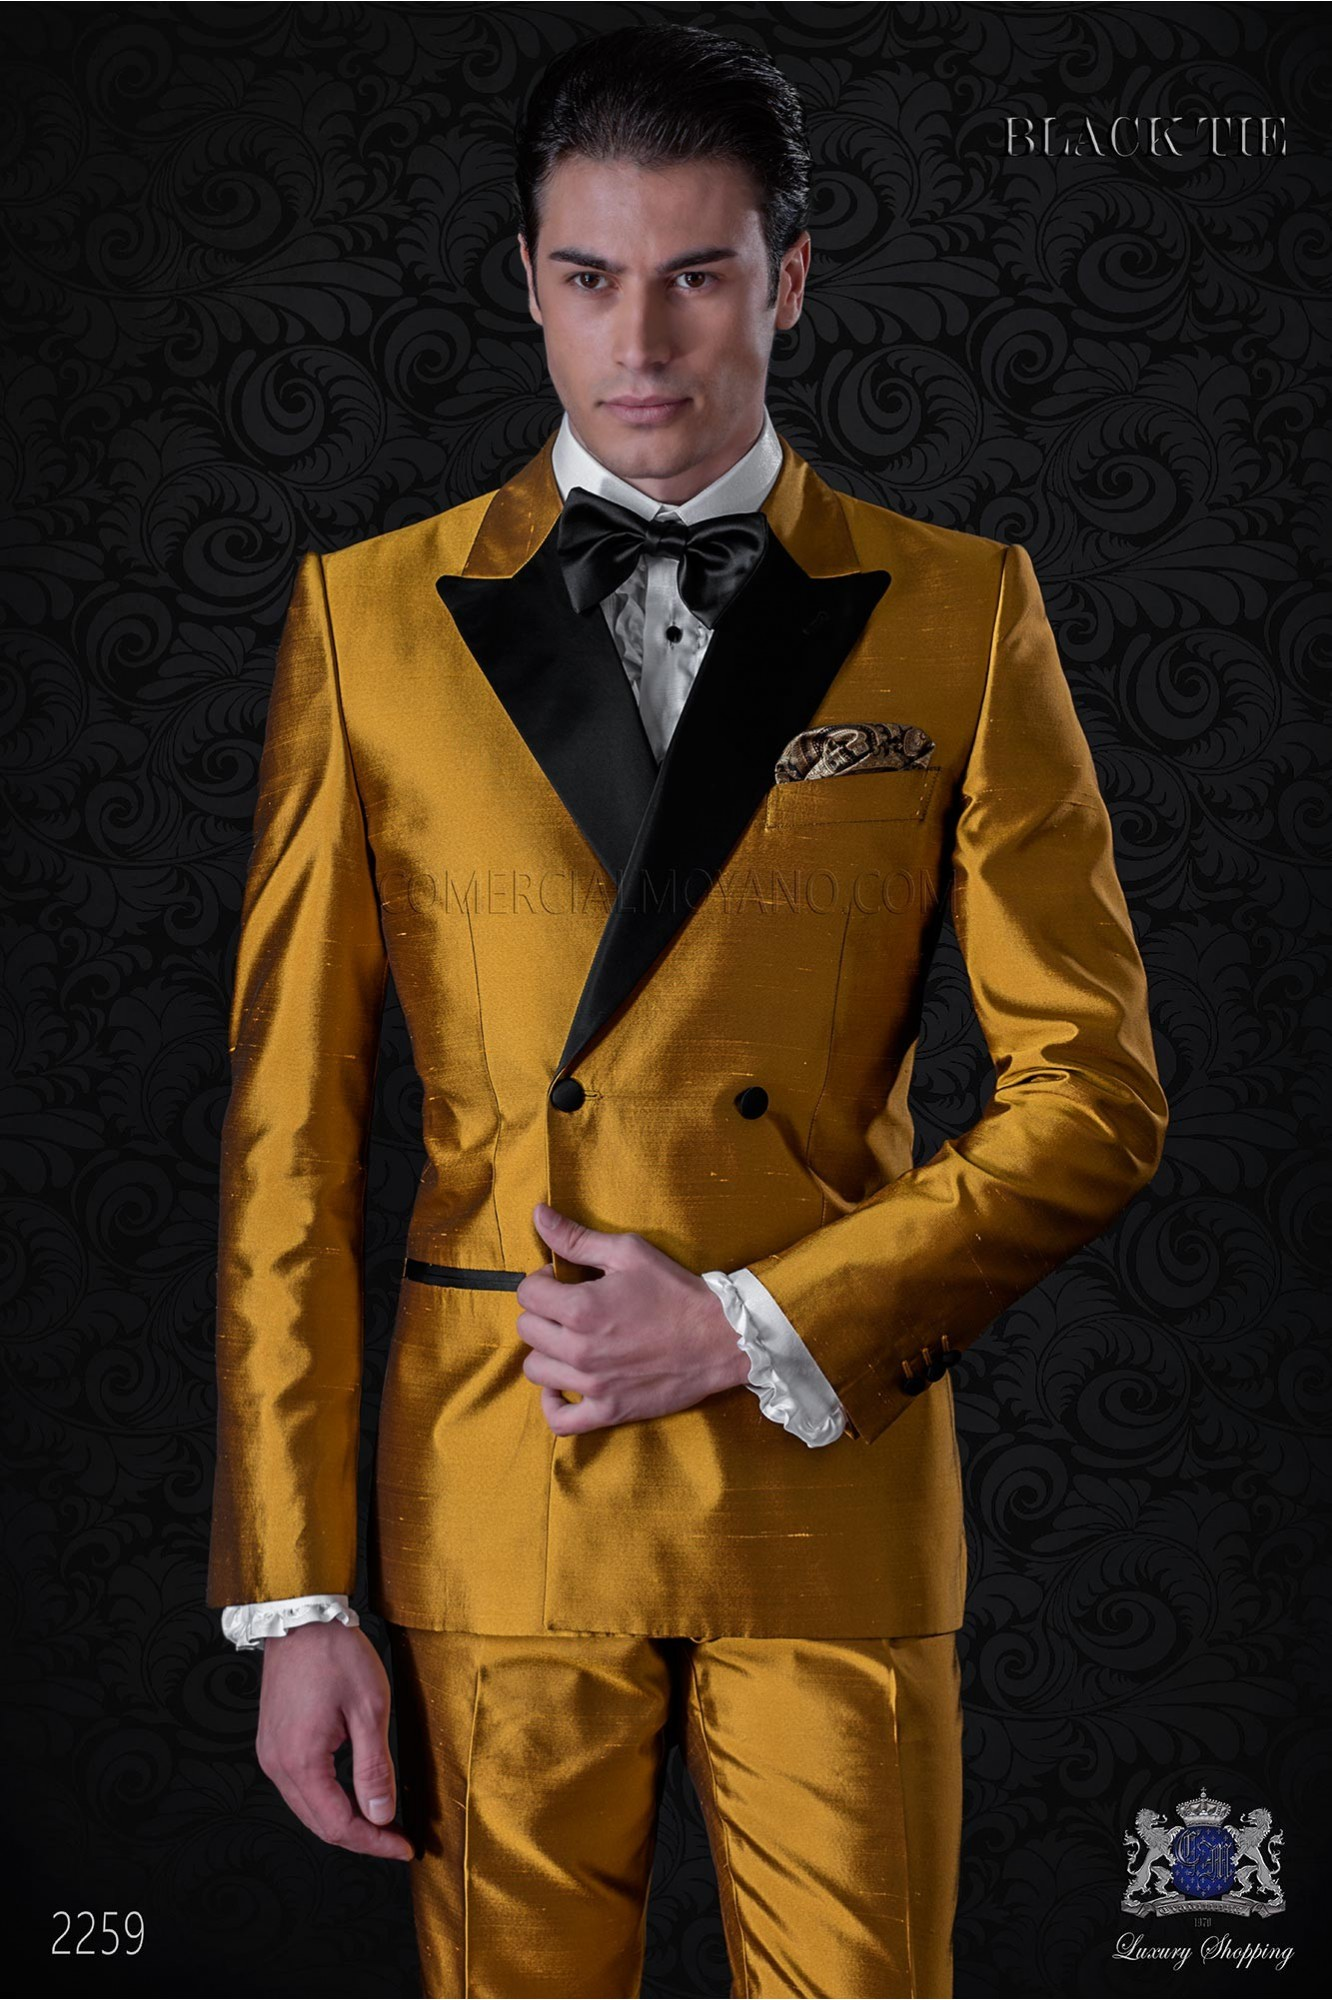 Tuxedo double breasted golden shantung with satin lapels. Peak lapels and 4 buttons. Shantung silk mix fabric